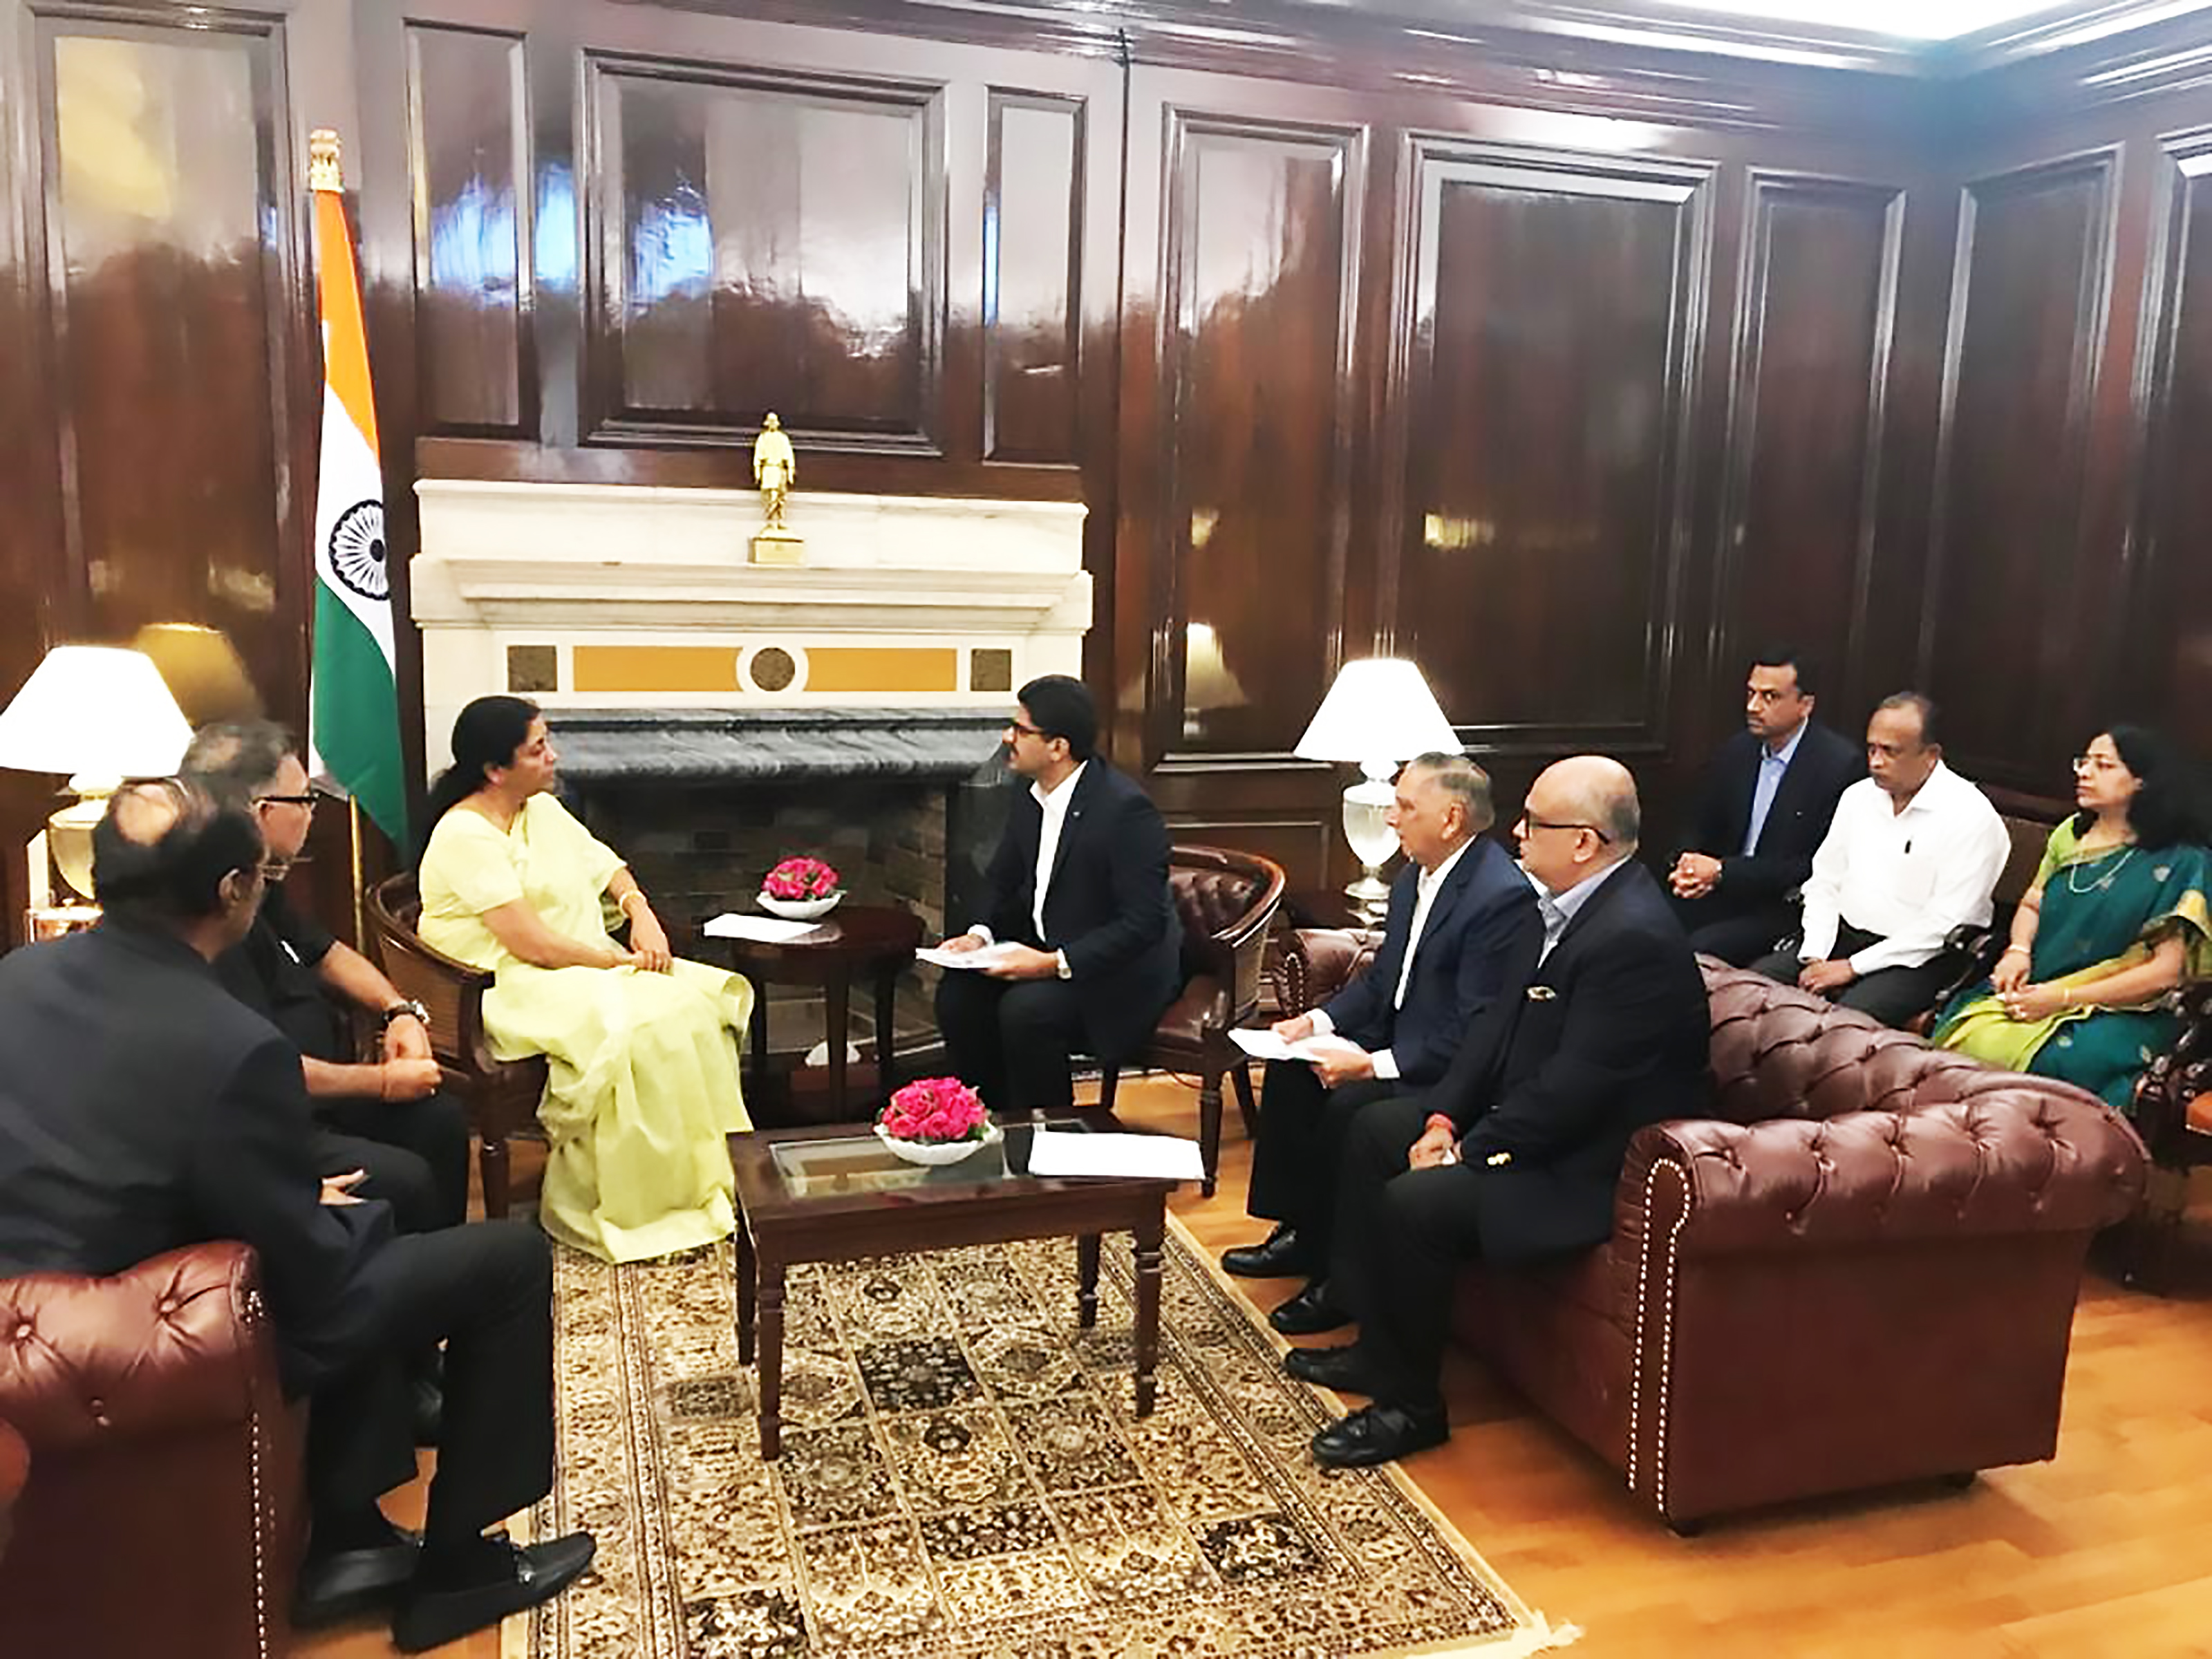 Delegation from TEXPROCIL and CITI in a meeting with the Hon'ble Finance Minister Smt. Nirmala Sitharaman in New Delhi on 18th Sept. 2019